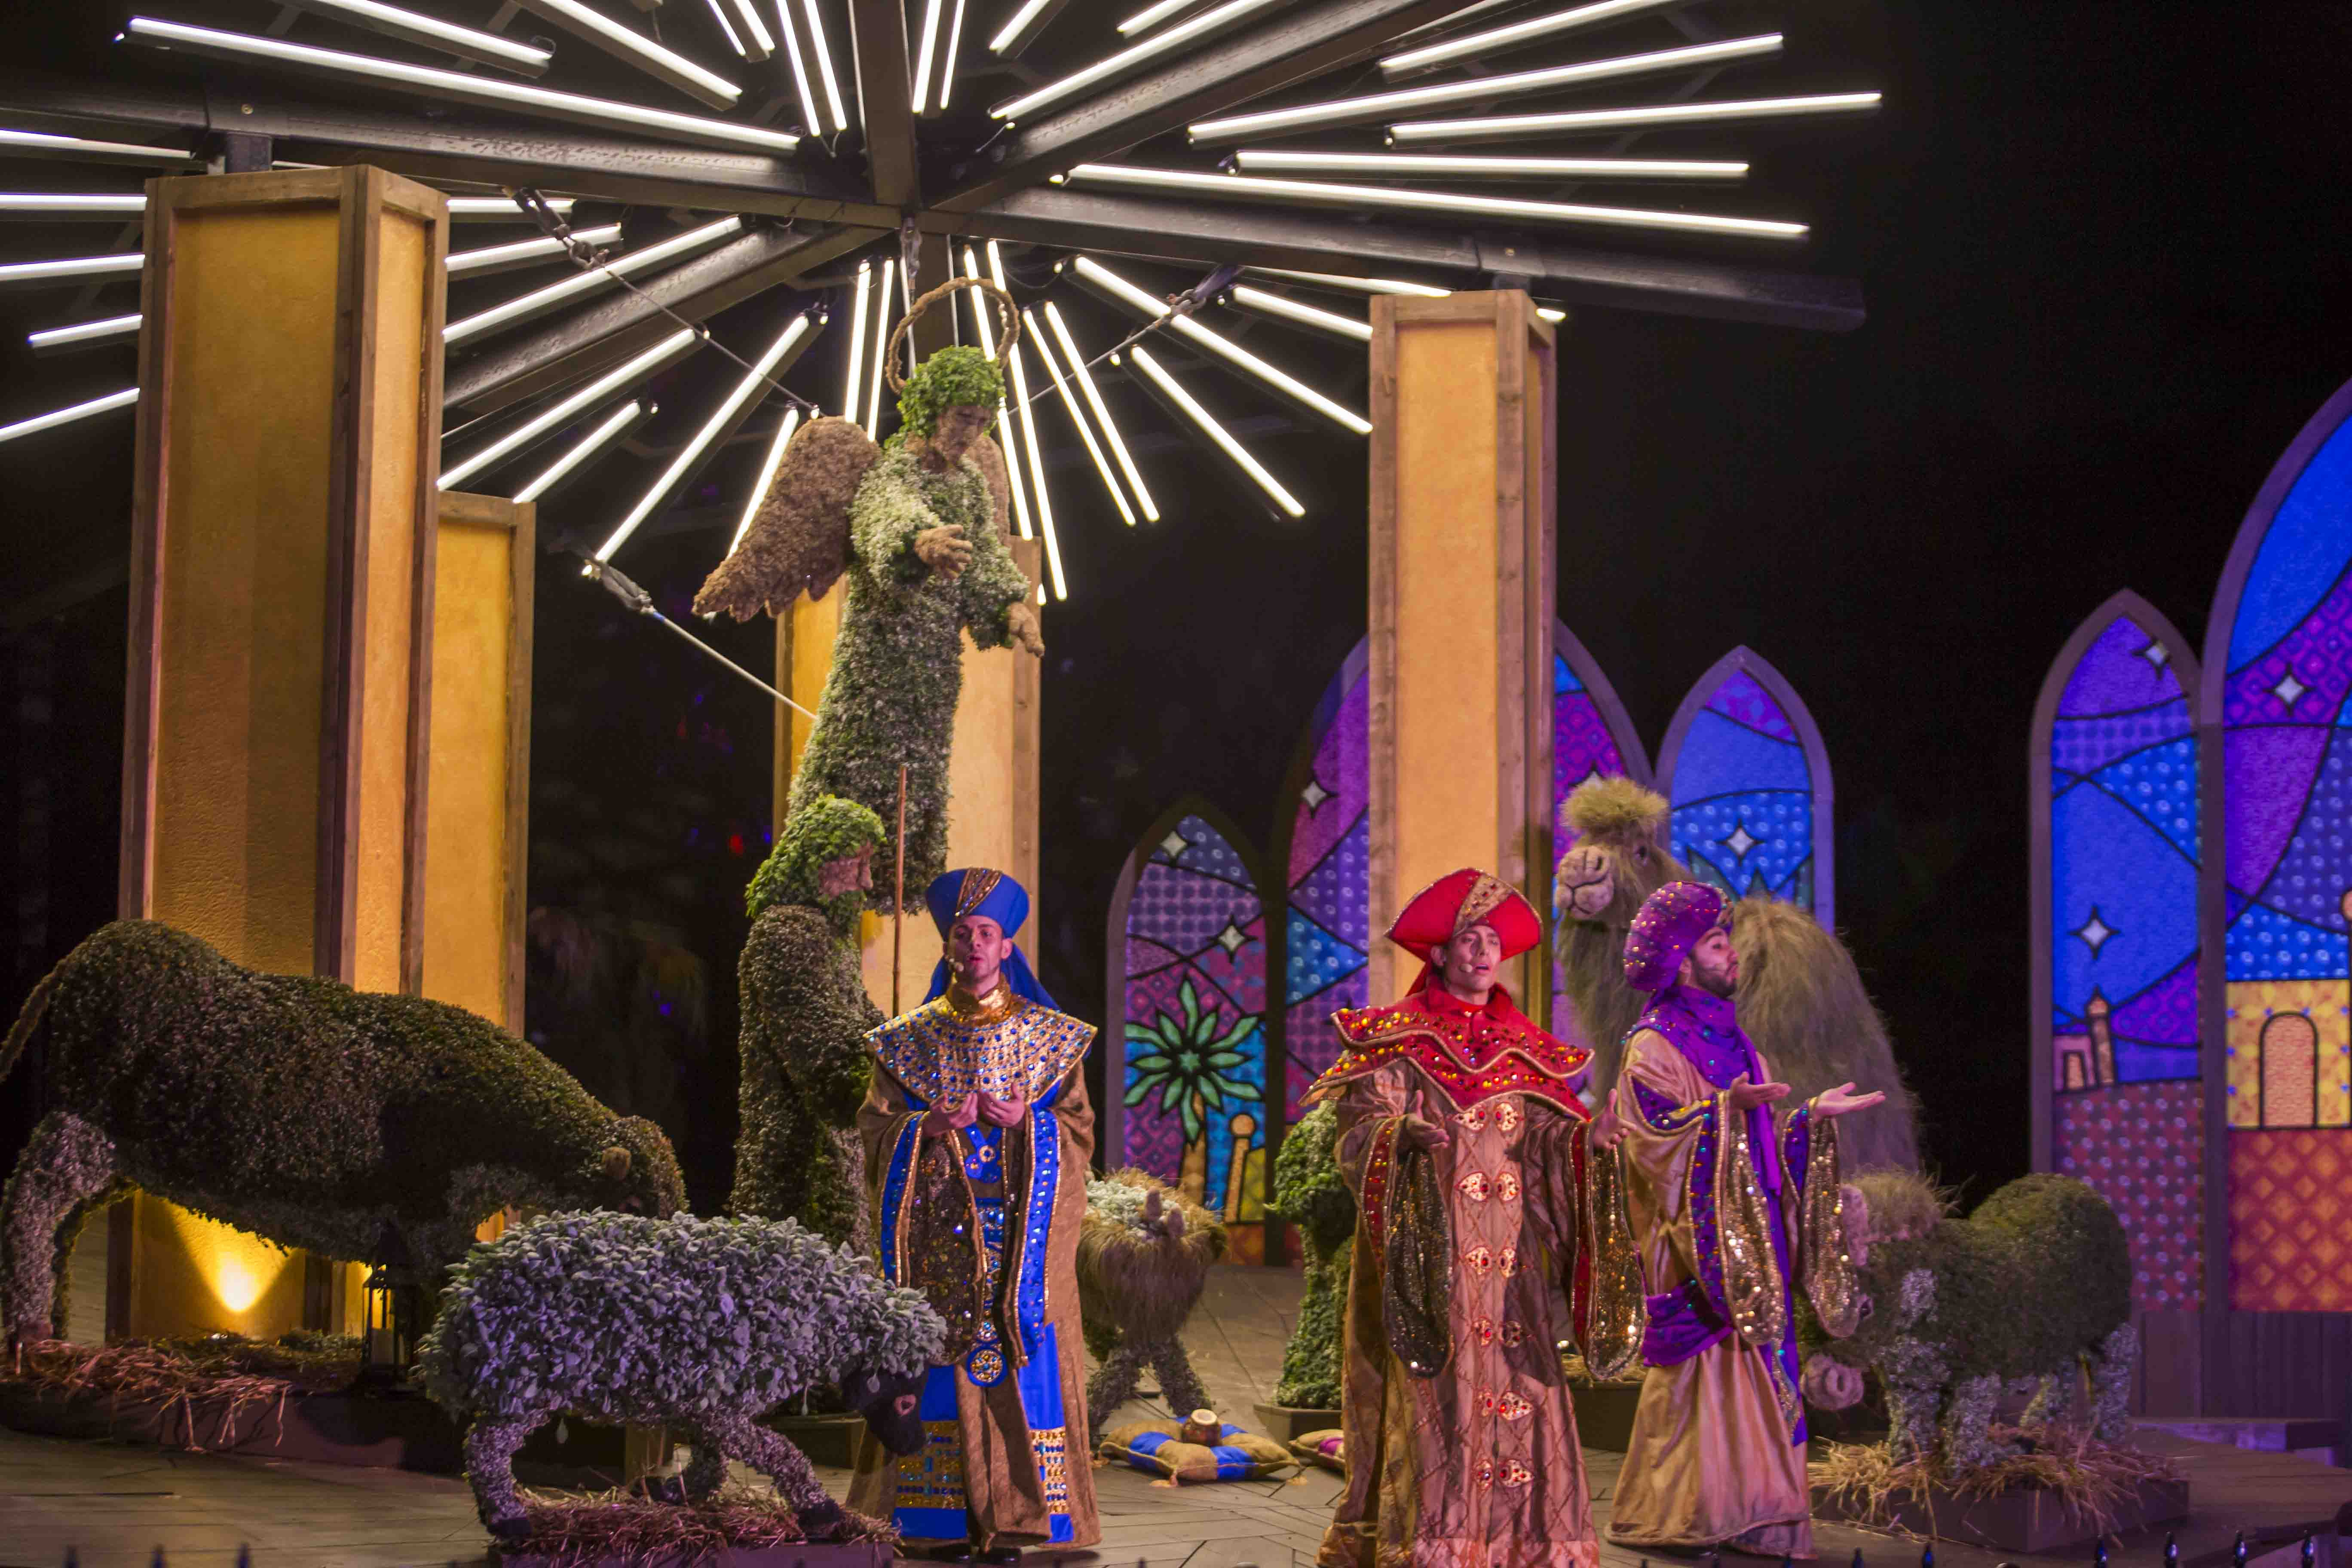 JOIN IN THE JOY AT BUSCH GARDENS CHRISTMAS TOWN™